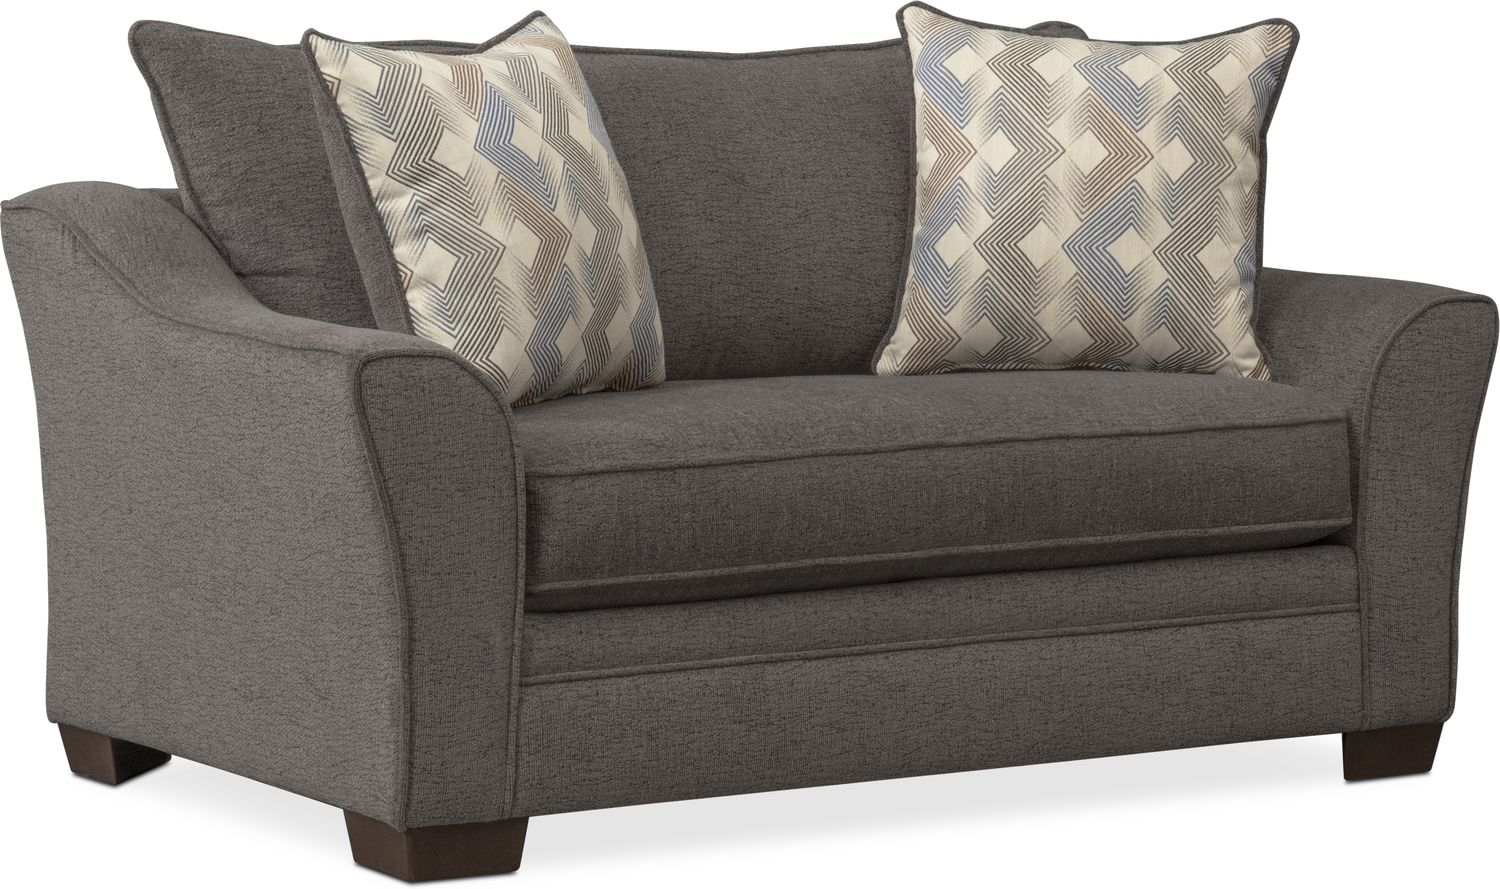 chair and a half sleeper wingback with ottoman trevor twin value city furniture click to change image